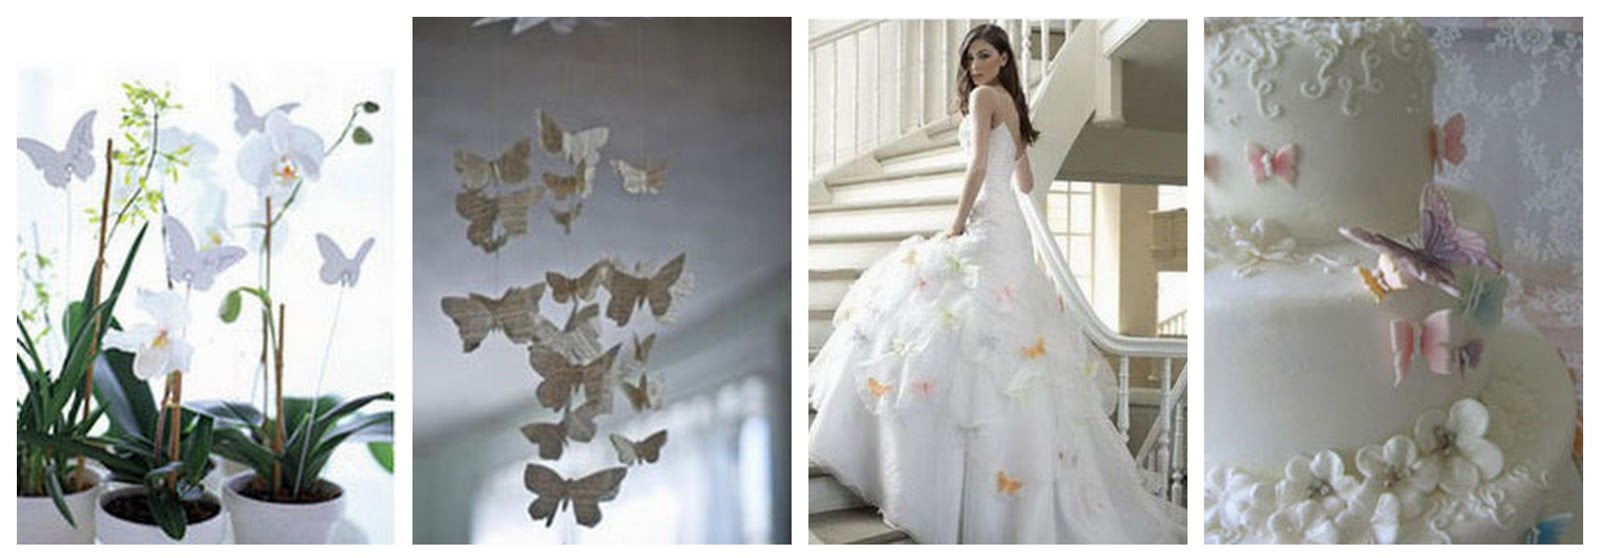 filename butterfly wedding theme before the big day uk wedding blog 2jpg